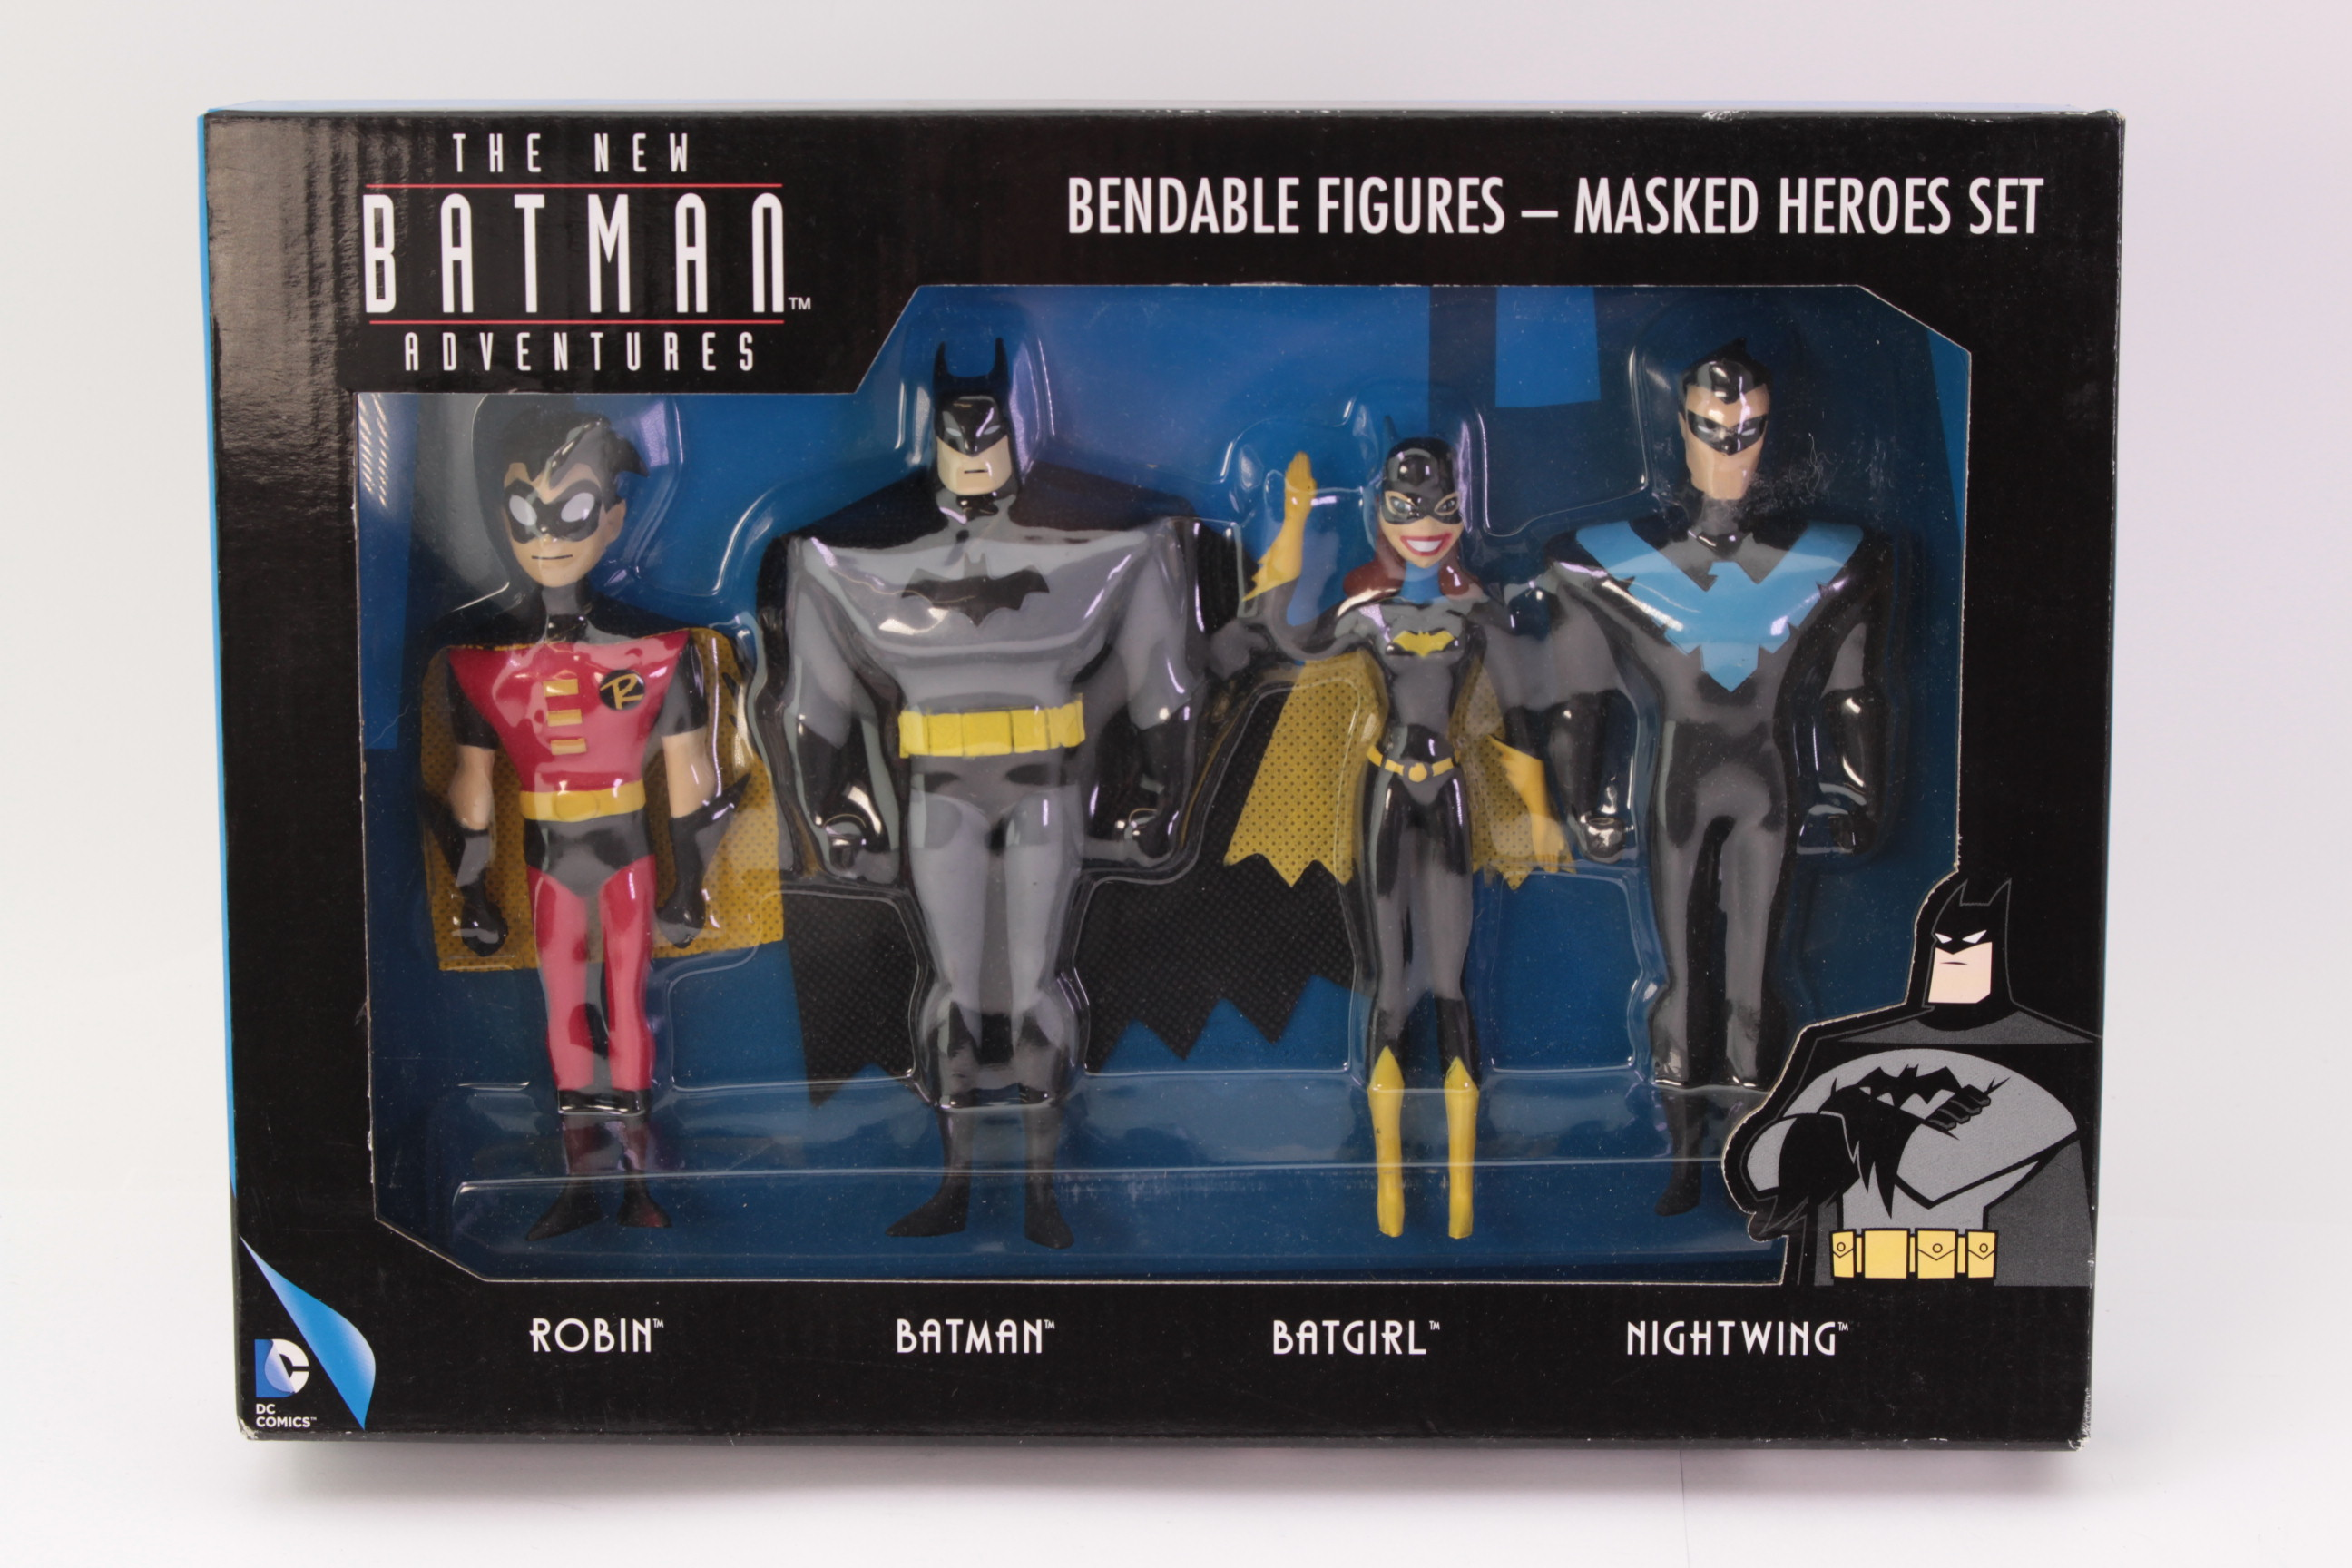 Picture Gallery for NJ Croce DC3956 Bendable Heroes Set